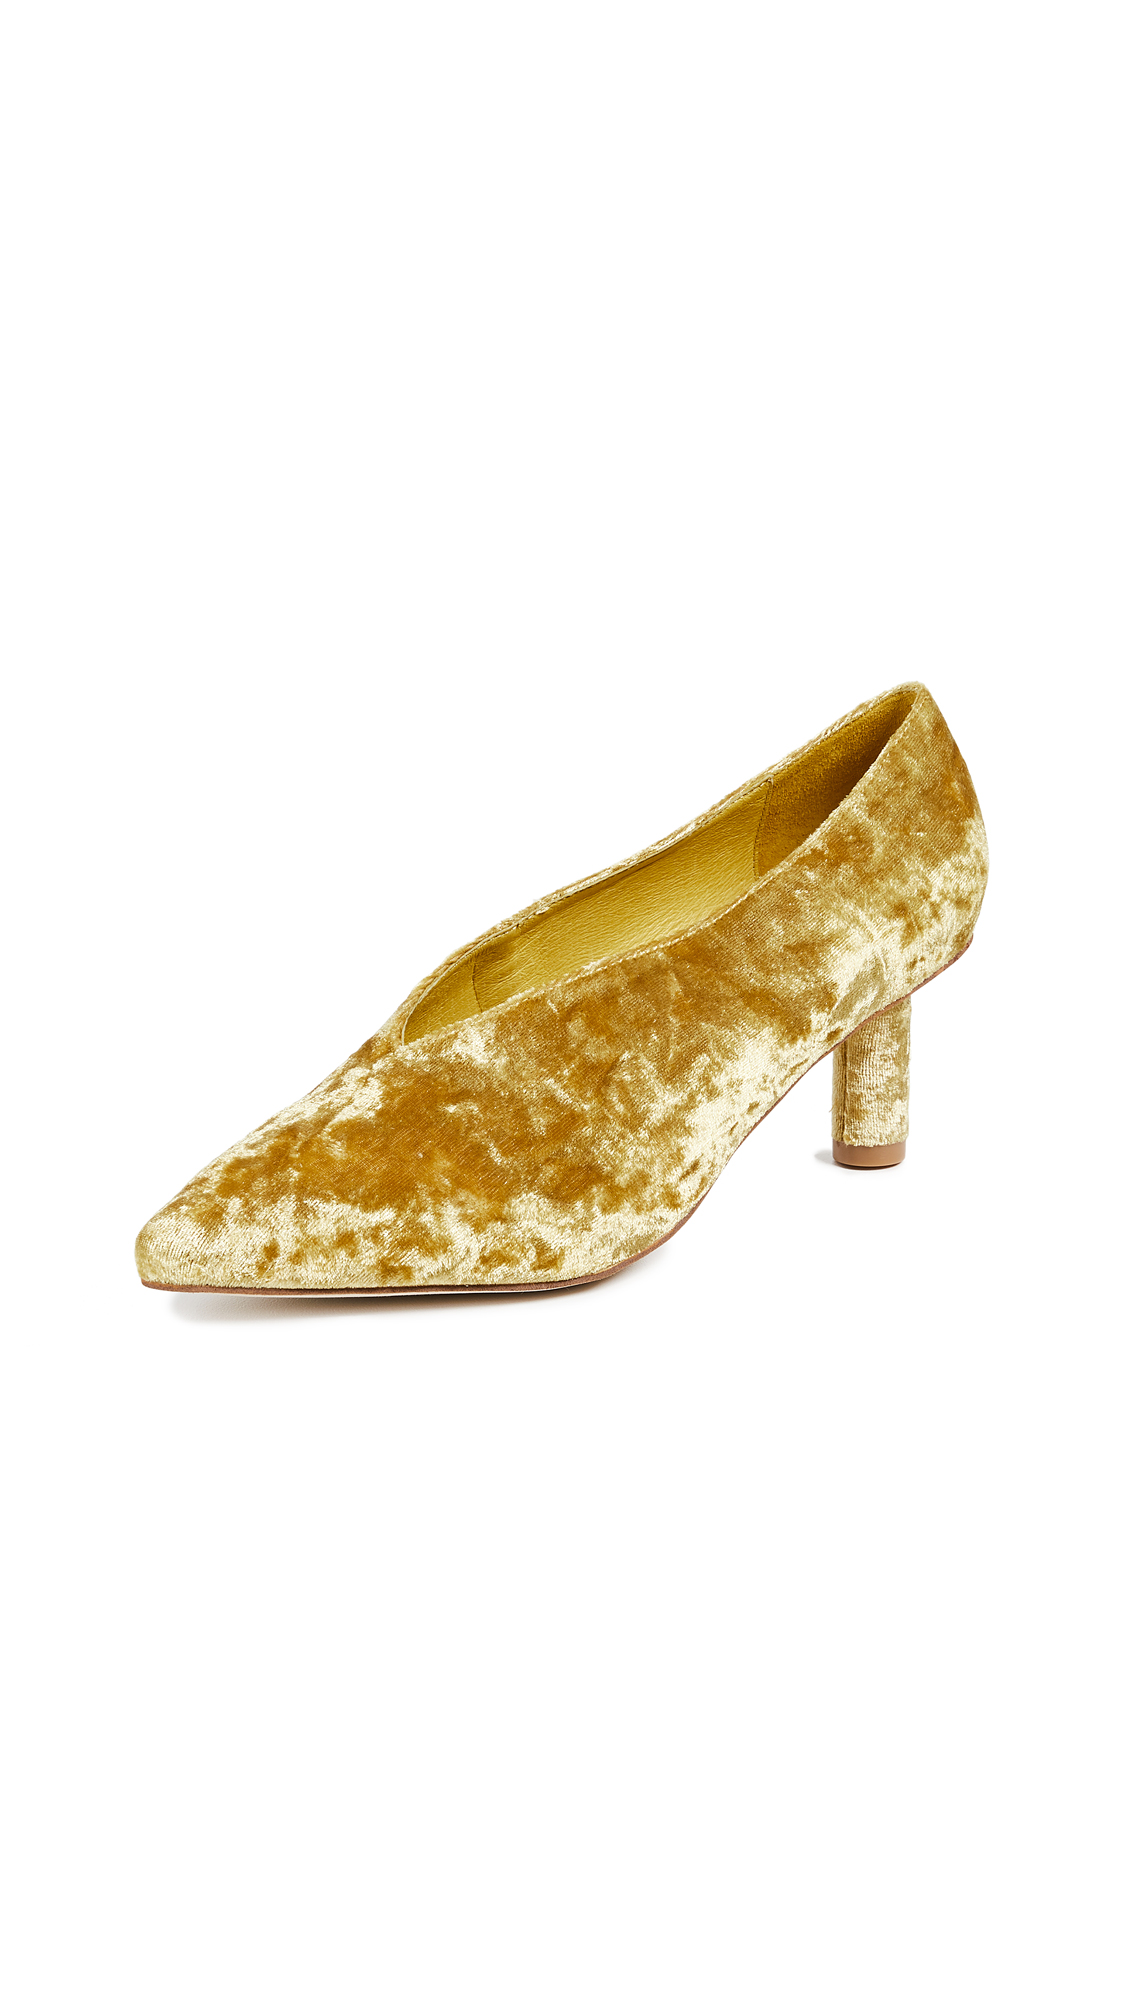 Jeffrey Campbell Carla Point Toe Pumps - Mustard